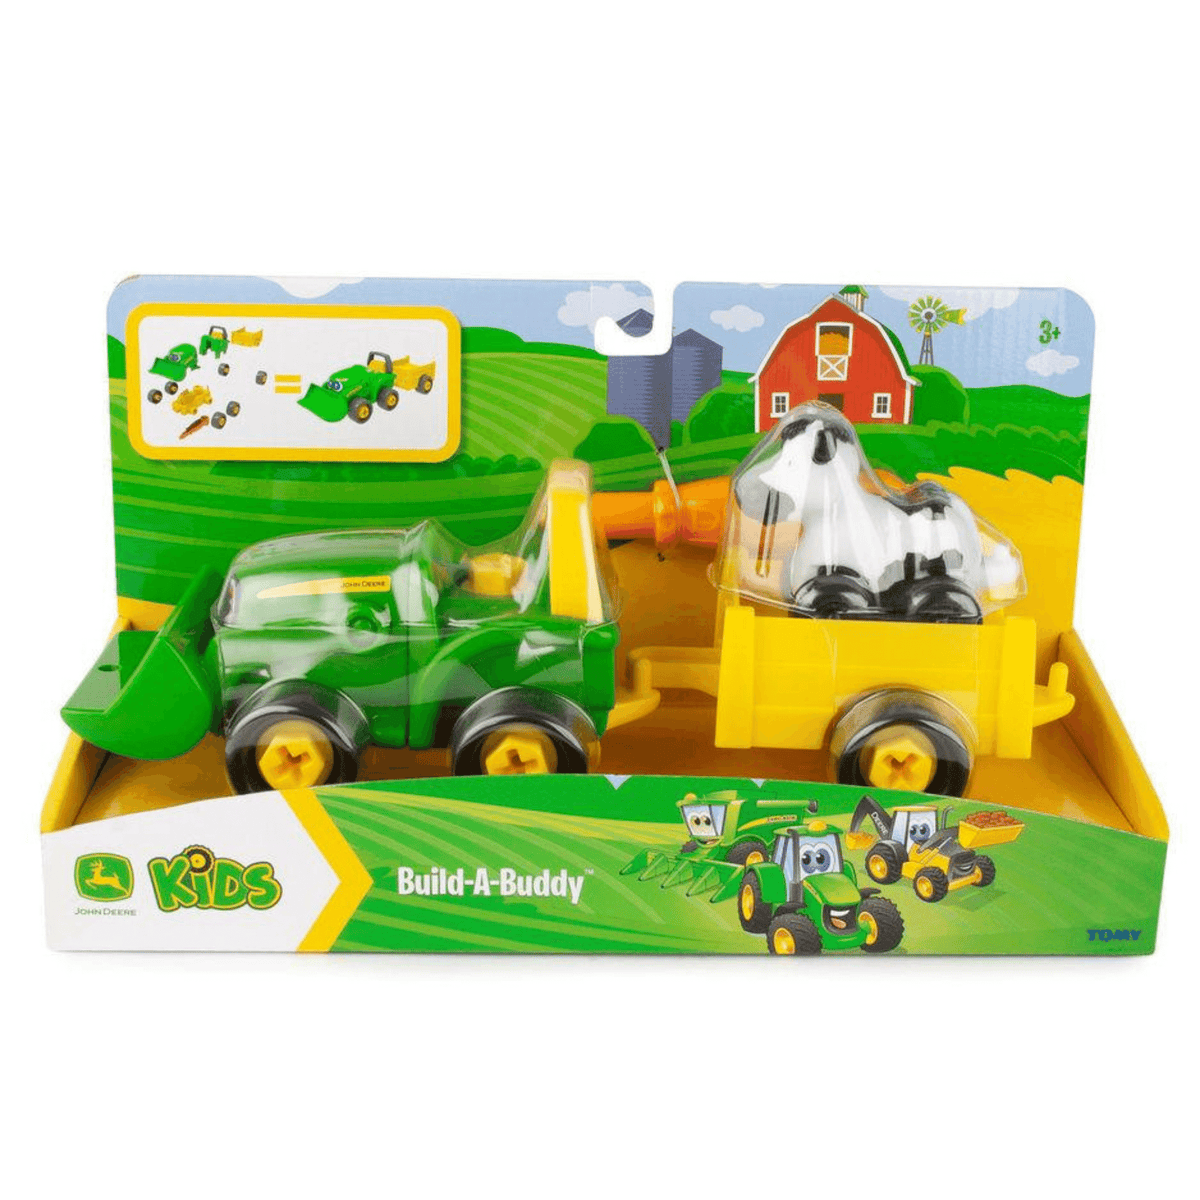 Tomy John Deere Bonnie Build-a-Buddy with Wagon and Cow